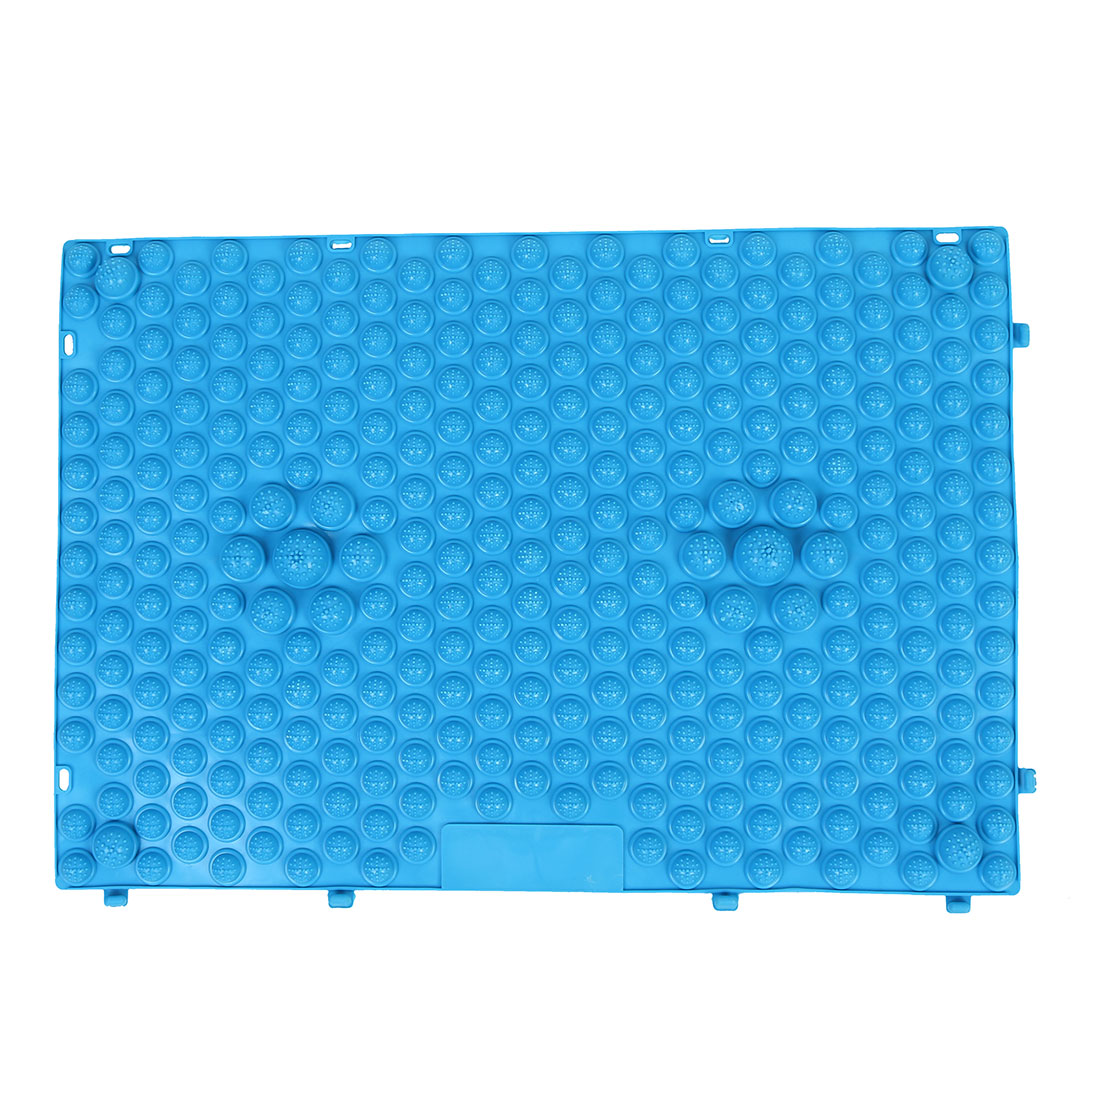 Outdoor Leisure Game Rubber Acupuncture Foot Massage Mat Shiatsu Sheet Blue